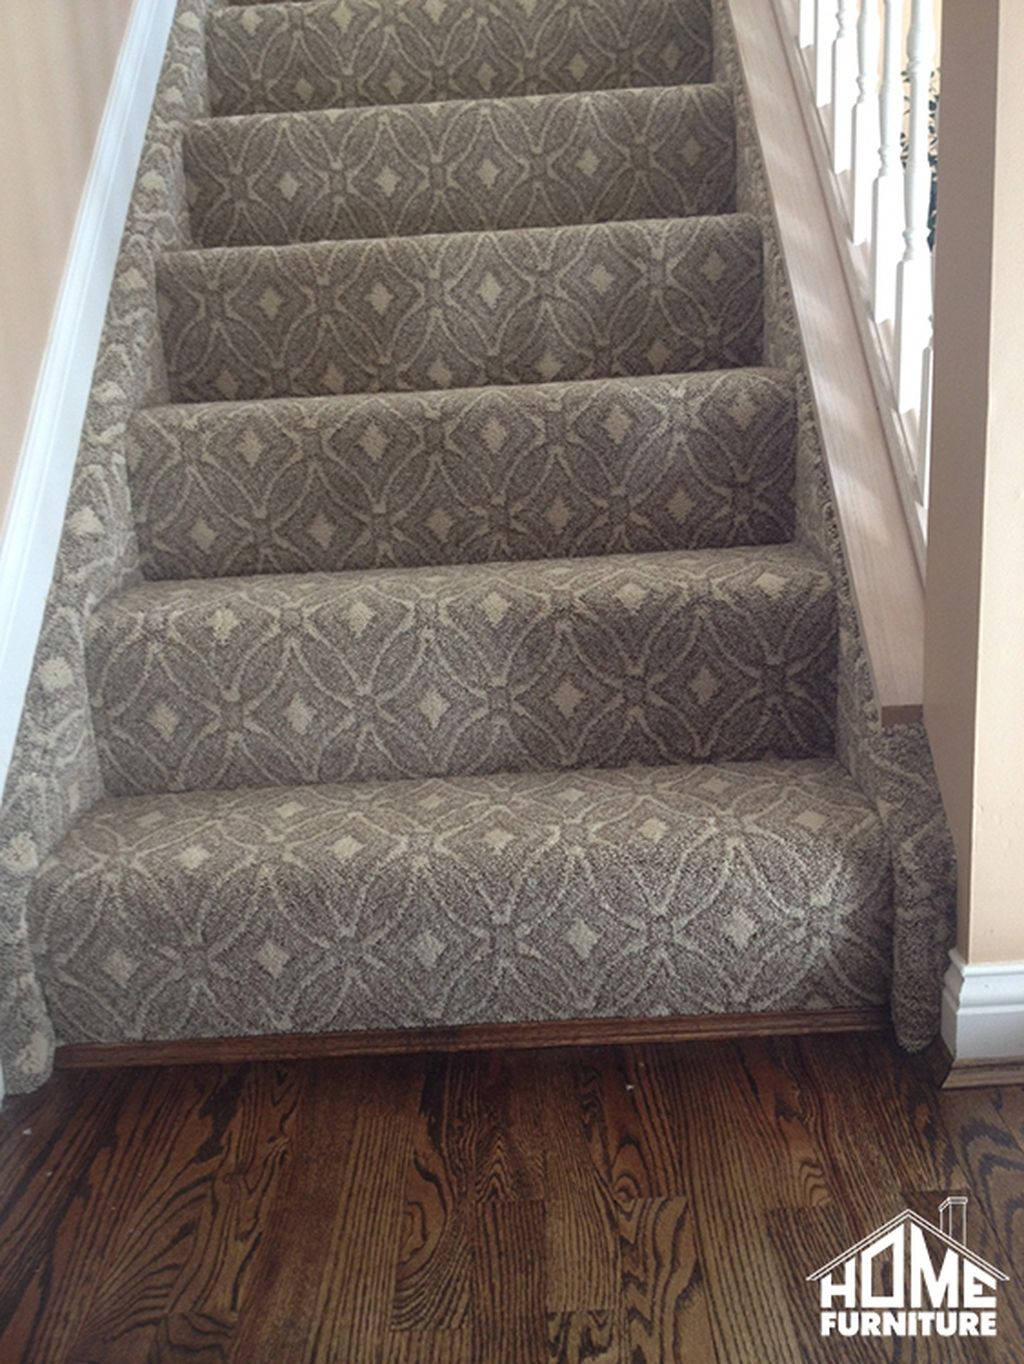 20 Beautiful Color Ideas For Your Stairs Decoration Stair Runner Carpet Carpet Stairs Patterned Carpet